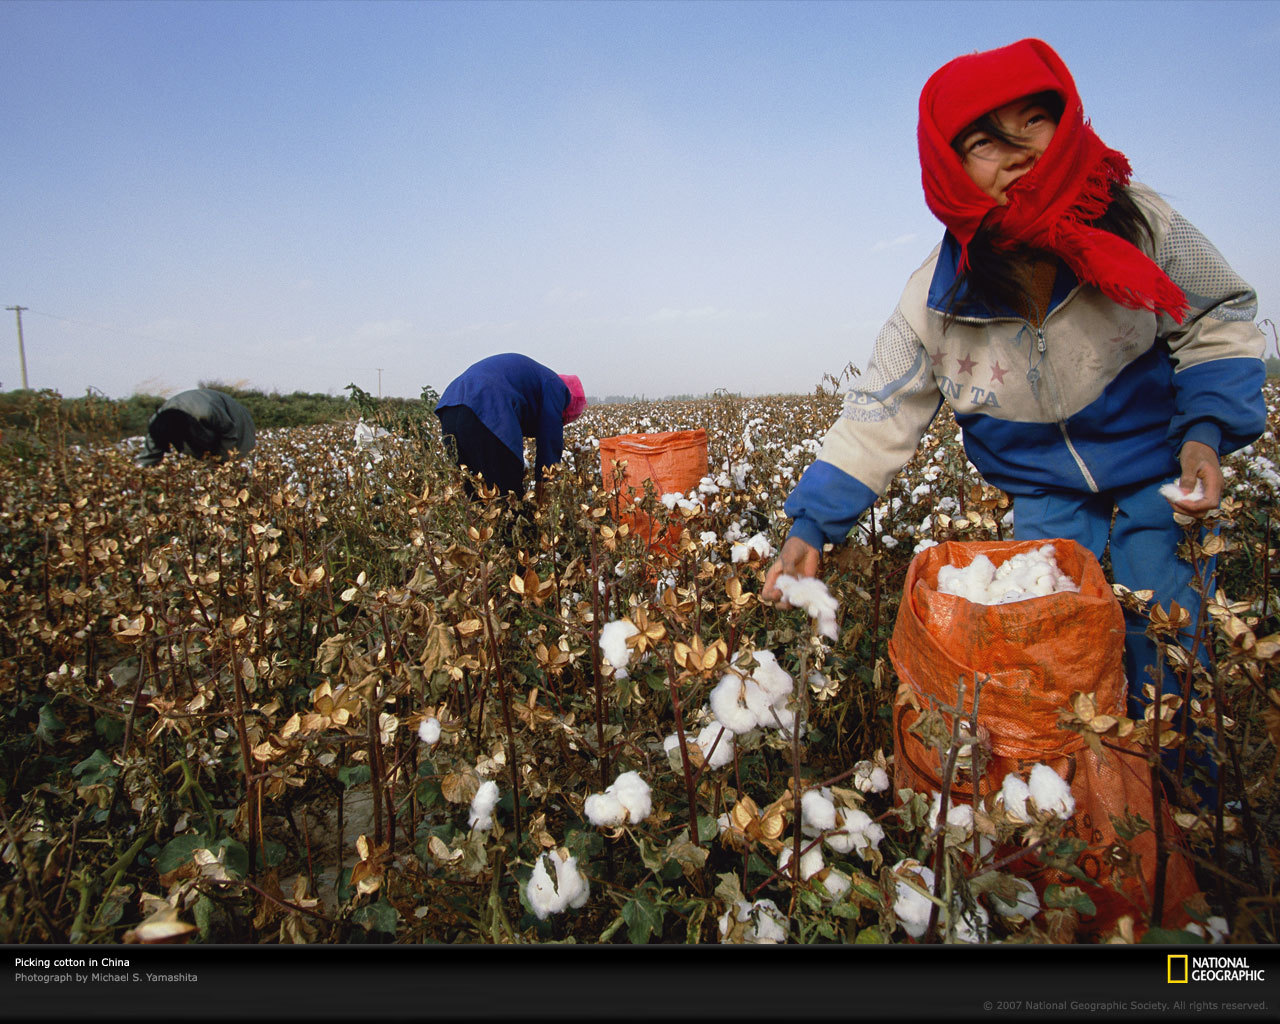 Women picking cotton China HD Wallpaper